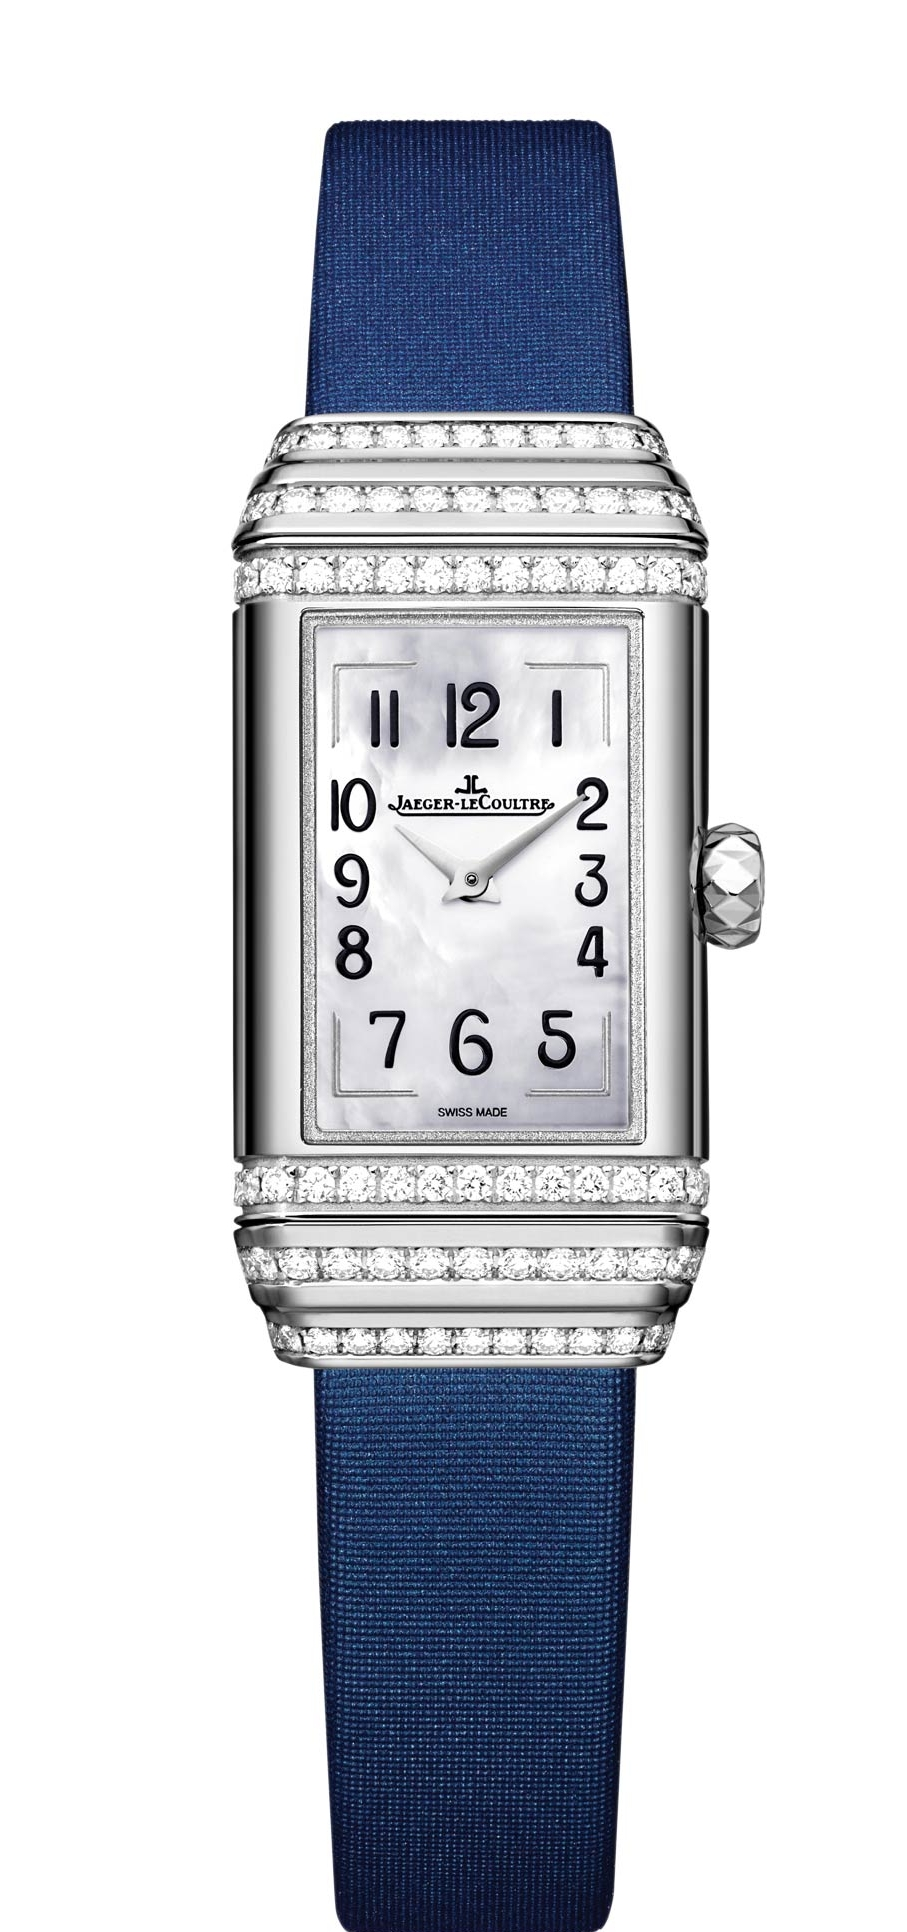 Jaeger-LeCoultre-Reverso-One-Duetto-Jewelry-Front-View-1.jpg